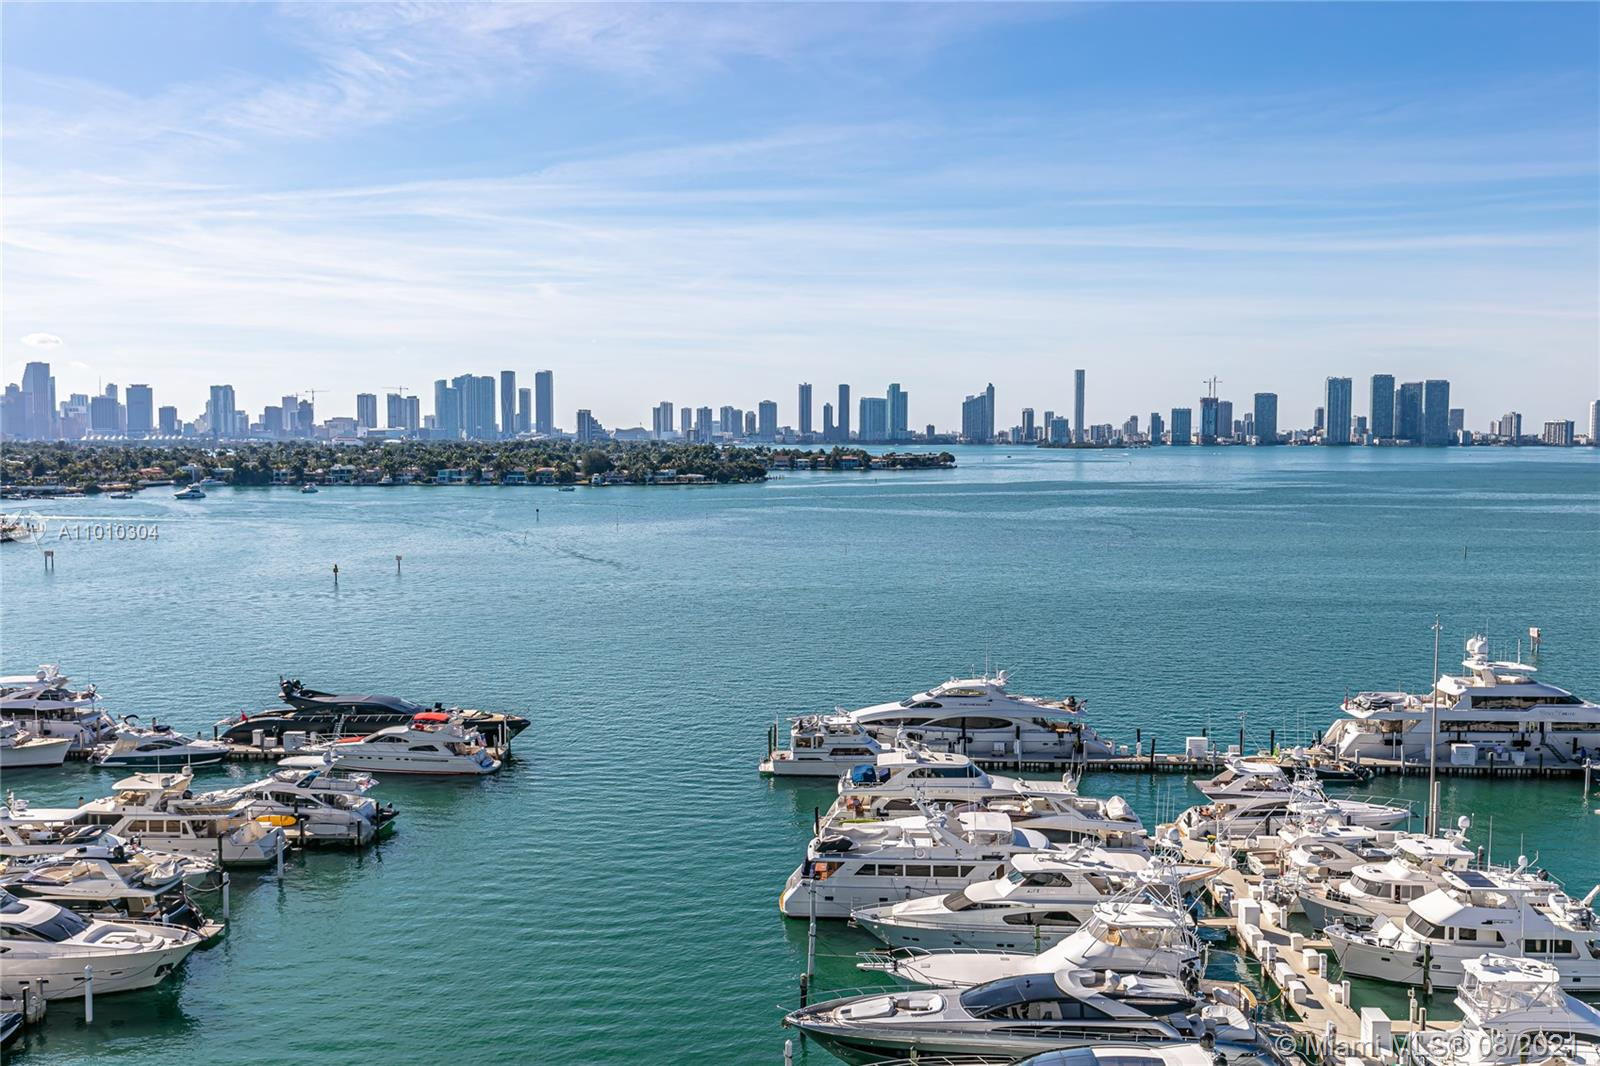 Rarely available corner unit in Sunset Harbour North featuring spectacular unobstructed views of Biscayne Bay, Sunset Islands, and Miami's skyline. Completely remodeled residence featuring 3 balconies, an intimate custom-designed media room, and 2 deeded parking spaces. Interior highlights include split floorplan, large format creamy white porcelain floors, custom kitchen, large laundry room, top of the line plumbing fixtures and appliances, NEST smart thermostats and hurricane impact sliding doors and windows. Full service building located in one of the most exclusive neighborhoods in Miami Beach, home to the prestigious Sunset Harbour Marina and an eclectic mix of shopping and dining options. Showing by appointment only with 24hrs minimum notice. Call listing agent.